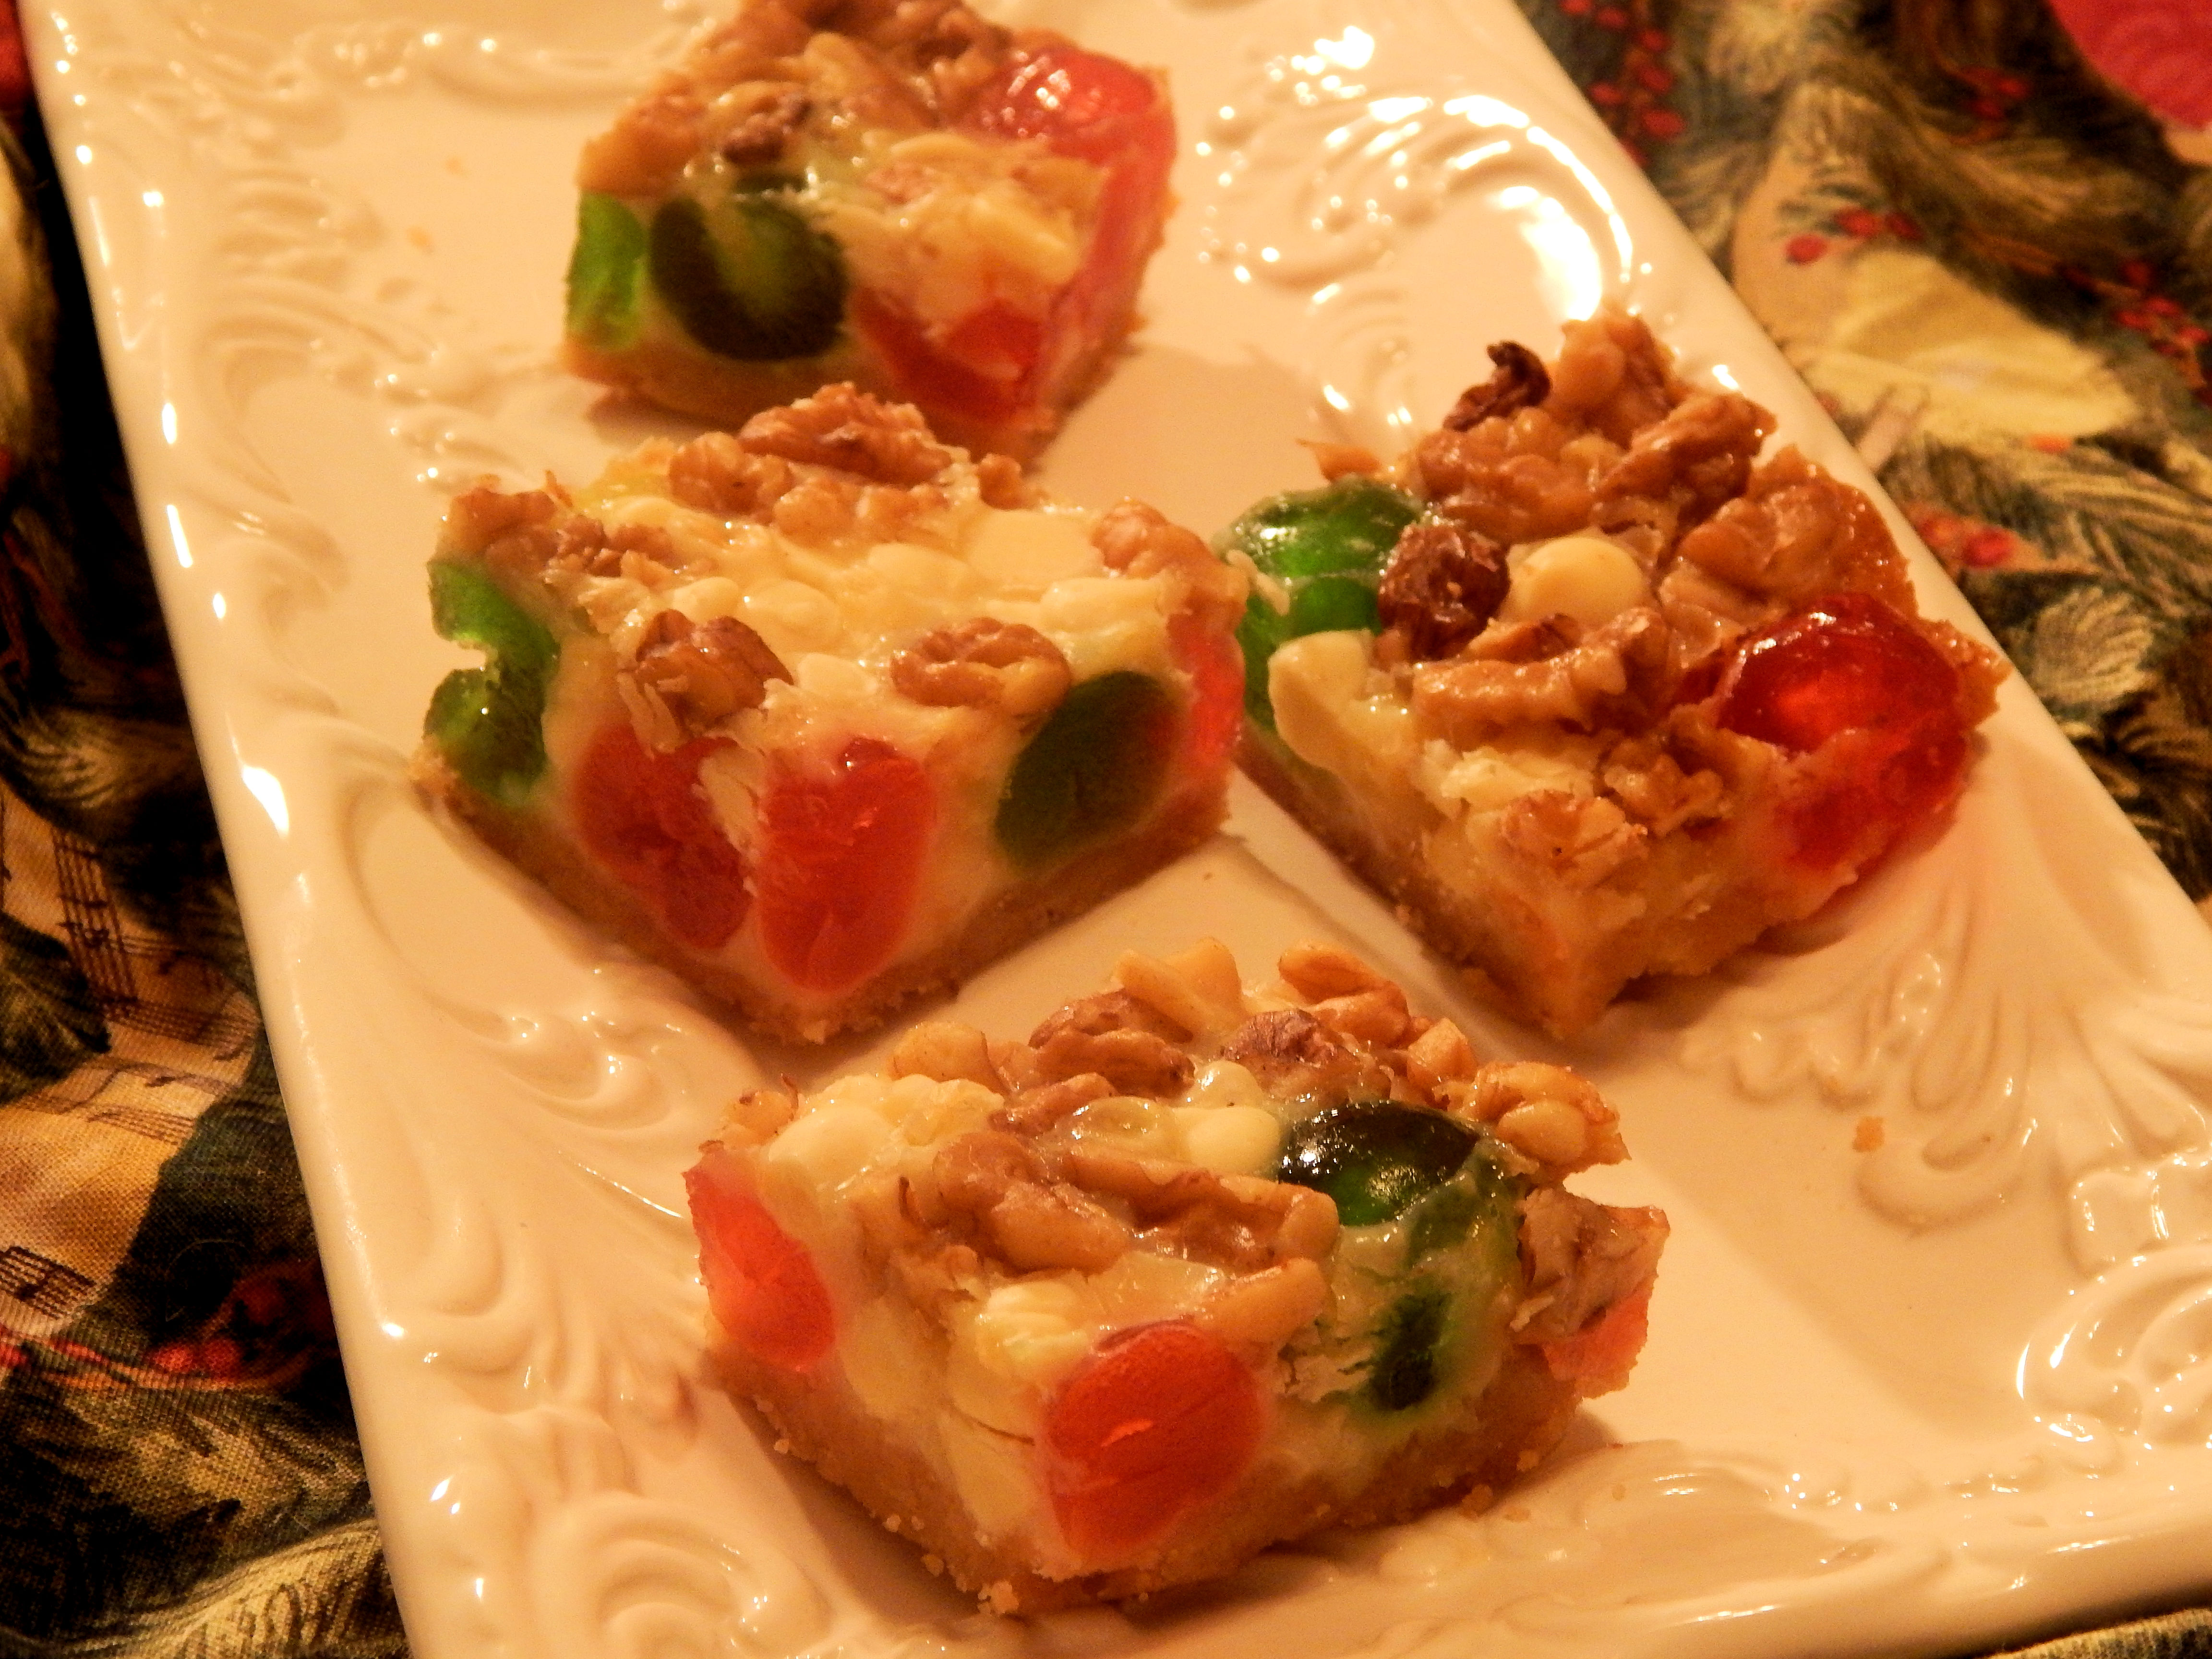 White Chocolate and Candied Fruit Magic Cookie Bars